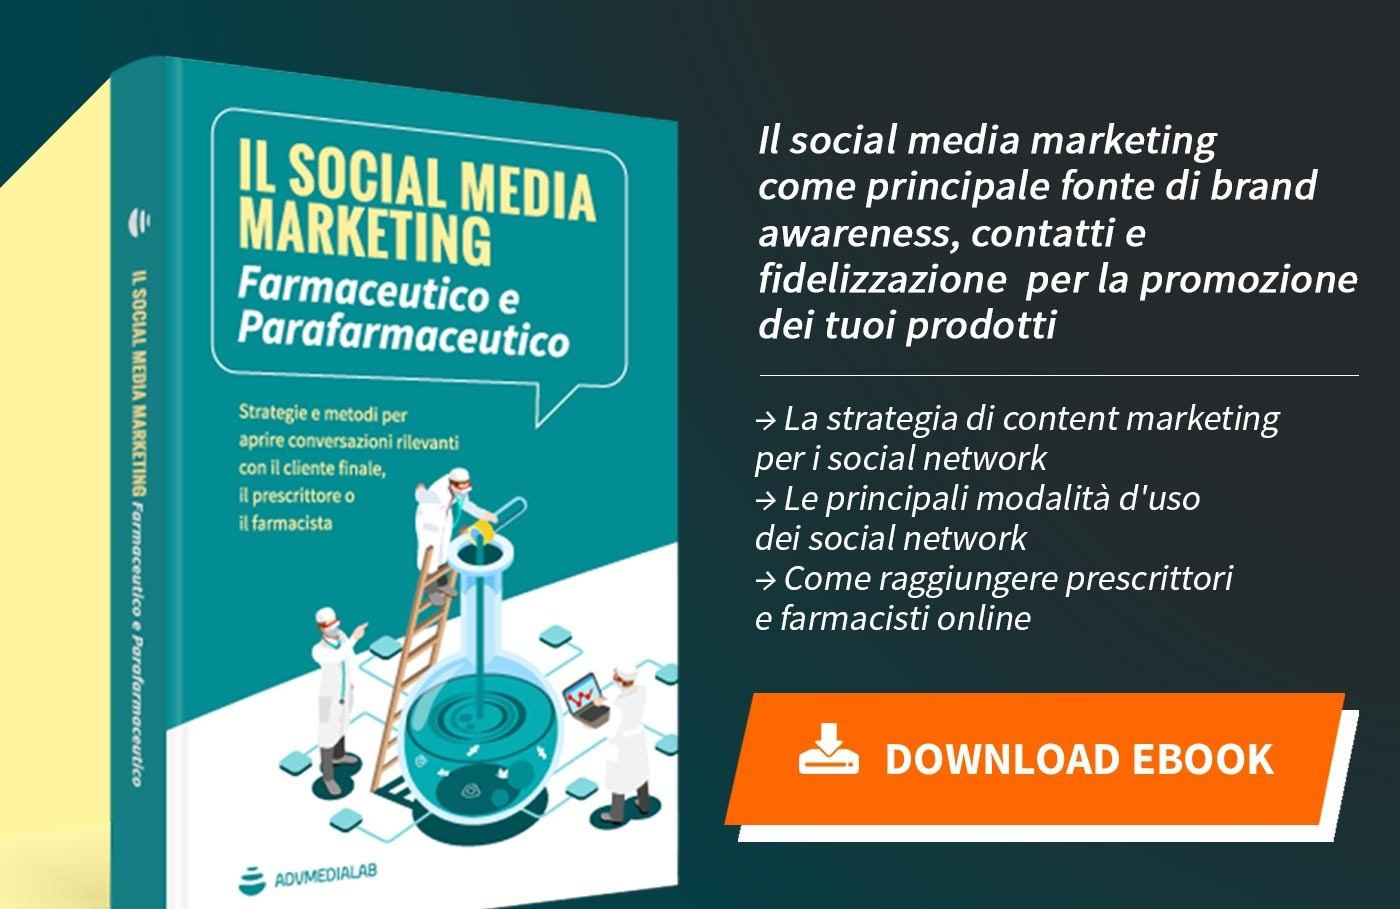 Scarica-ebook-social-media-marketing-farmaceutico-parafarmaceutico